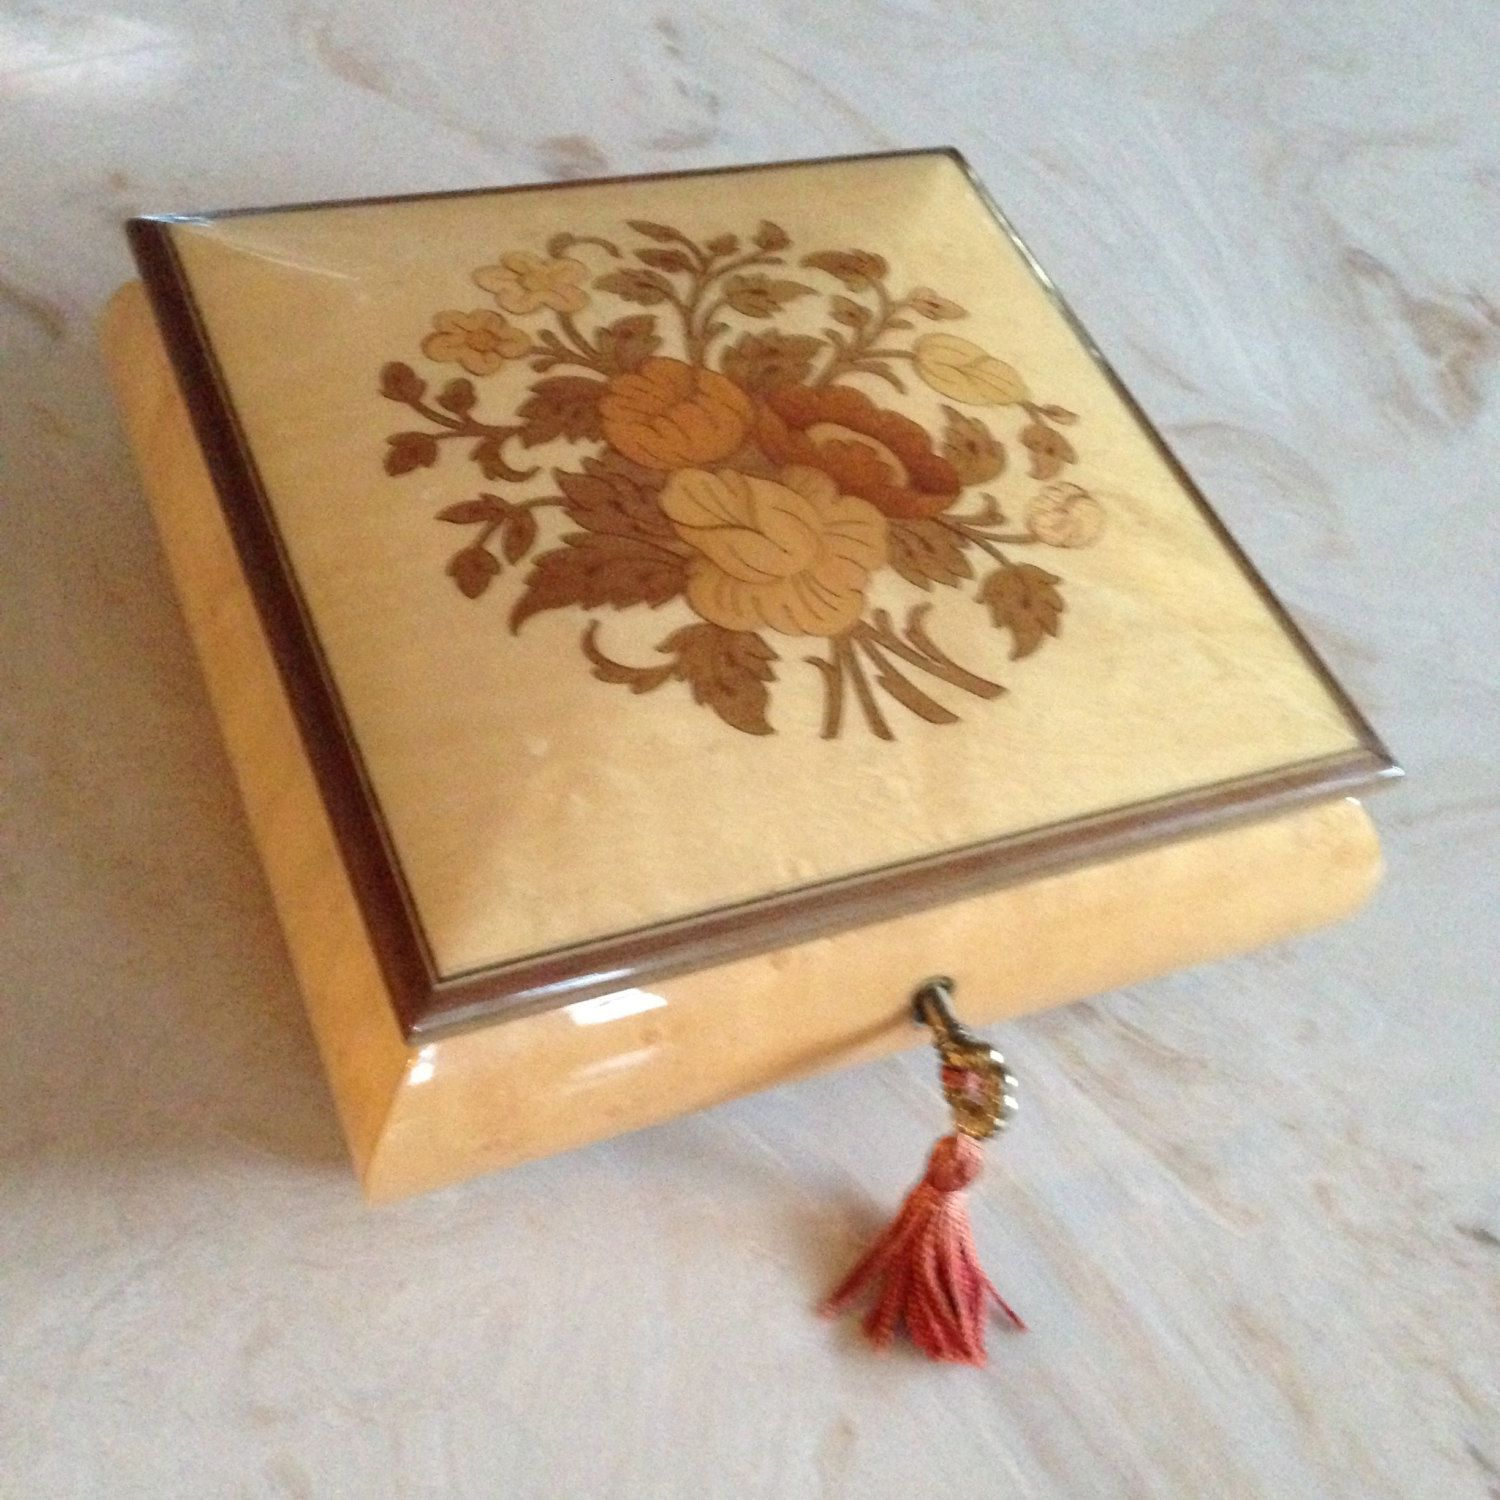 Vintage Inlaid Marquetry Wood Roses Music Jewelry Box With Key Reuge Swiss Musical Movement Roses Music Box Jewelry Music Poster Design Music Notes Wall Art